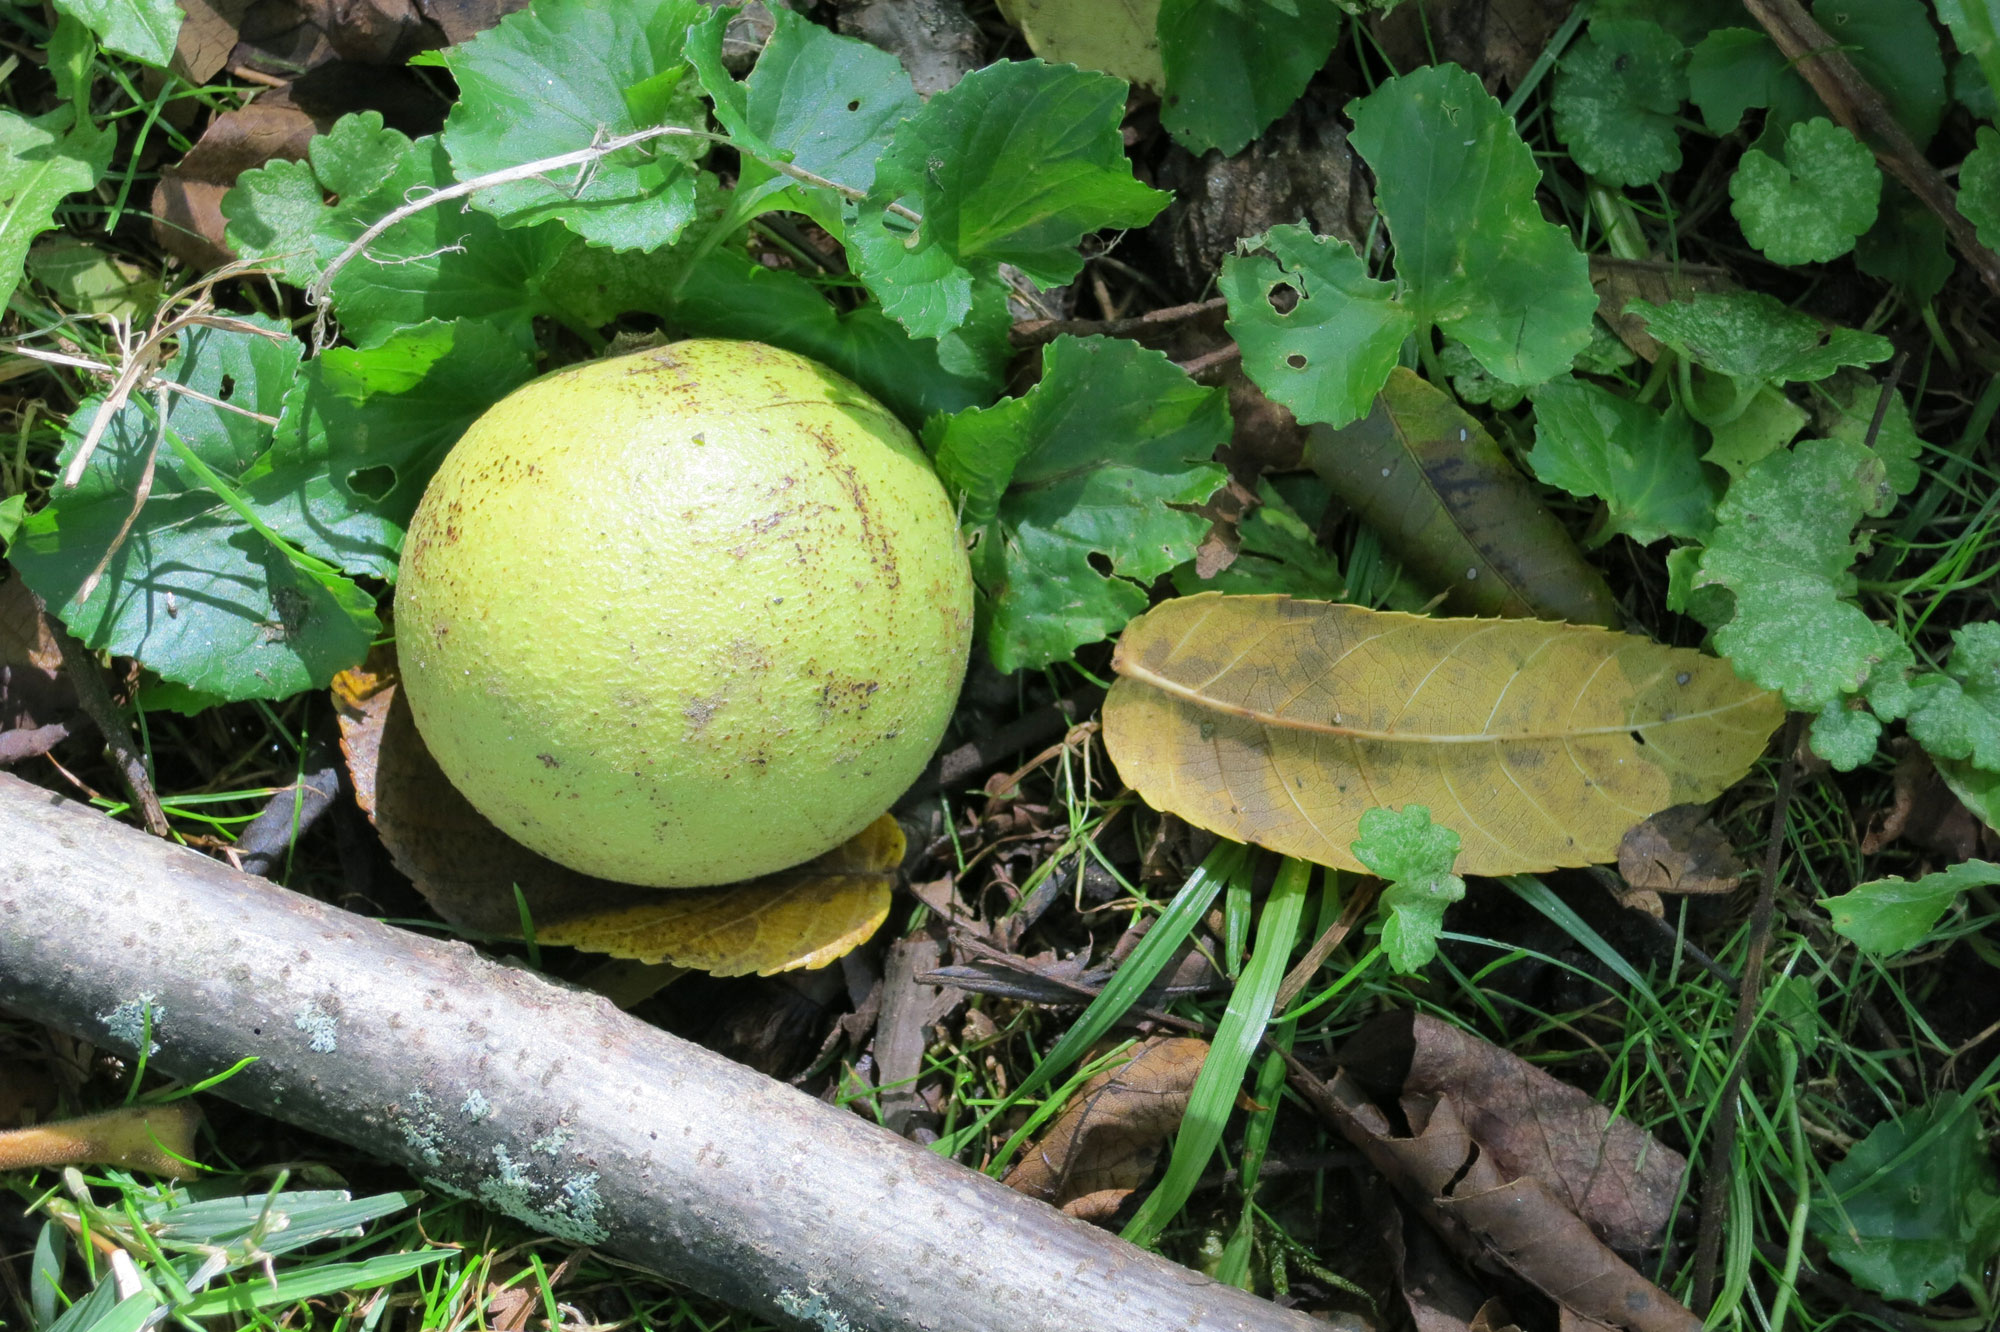 Black walnut fruit on ground